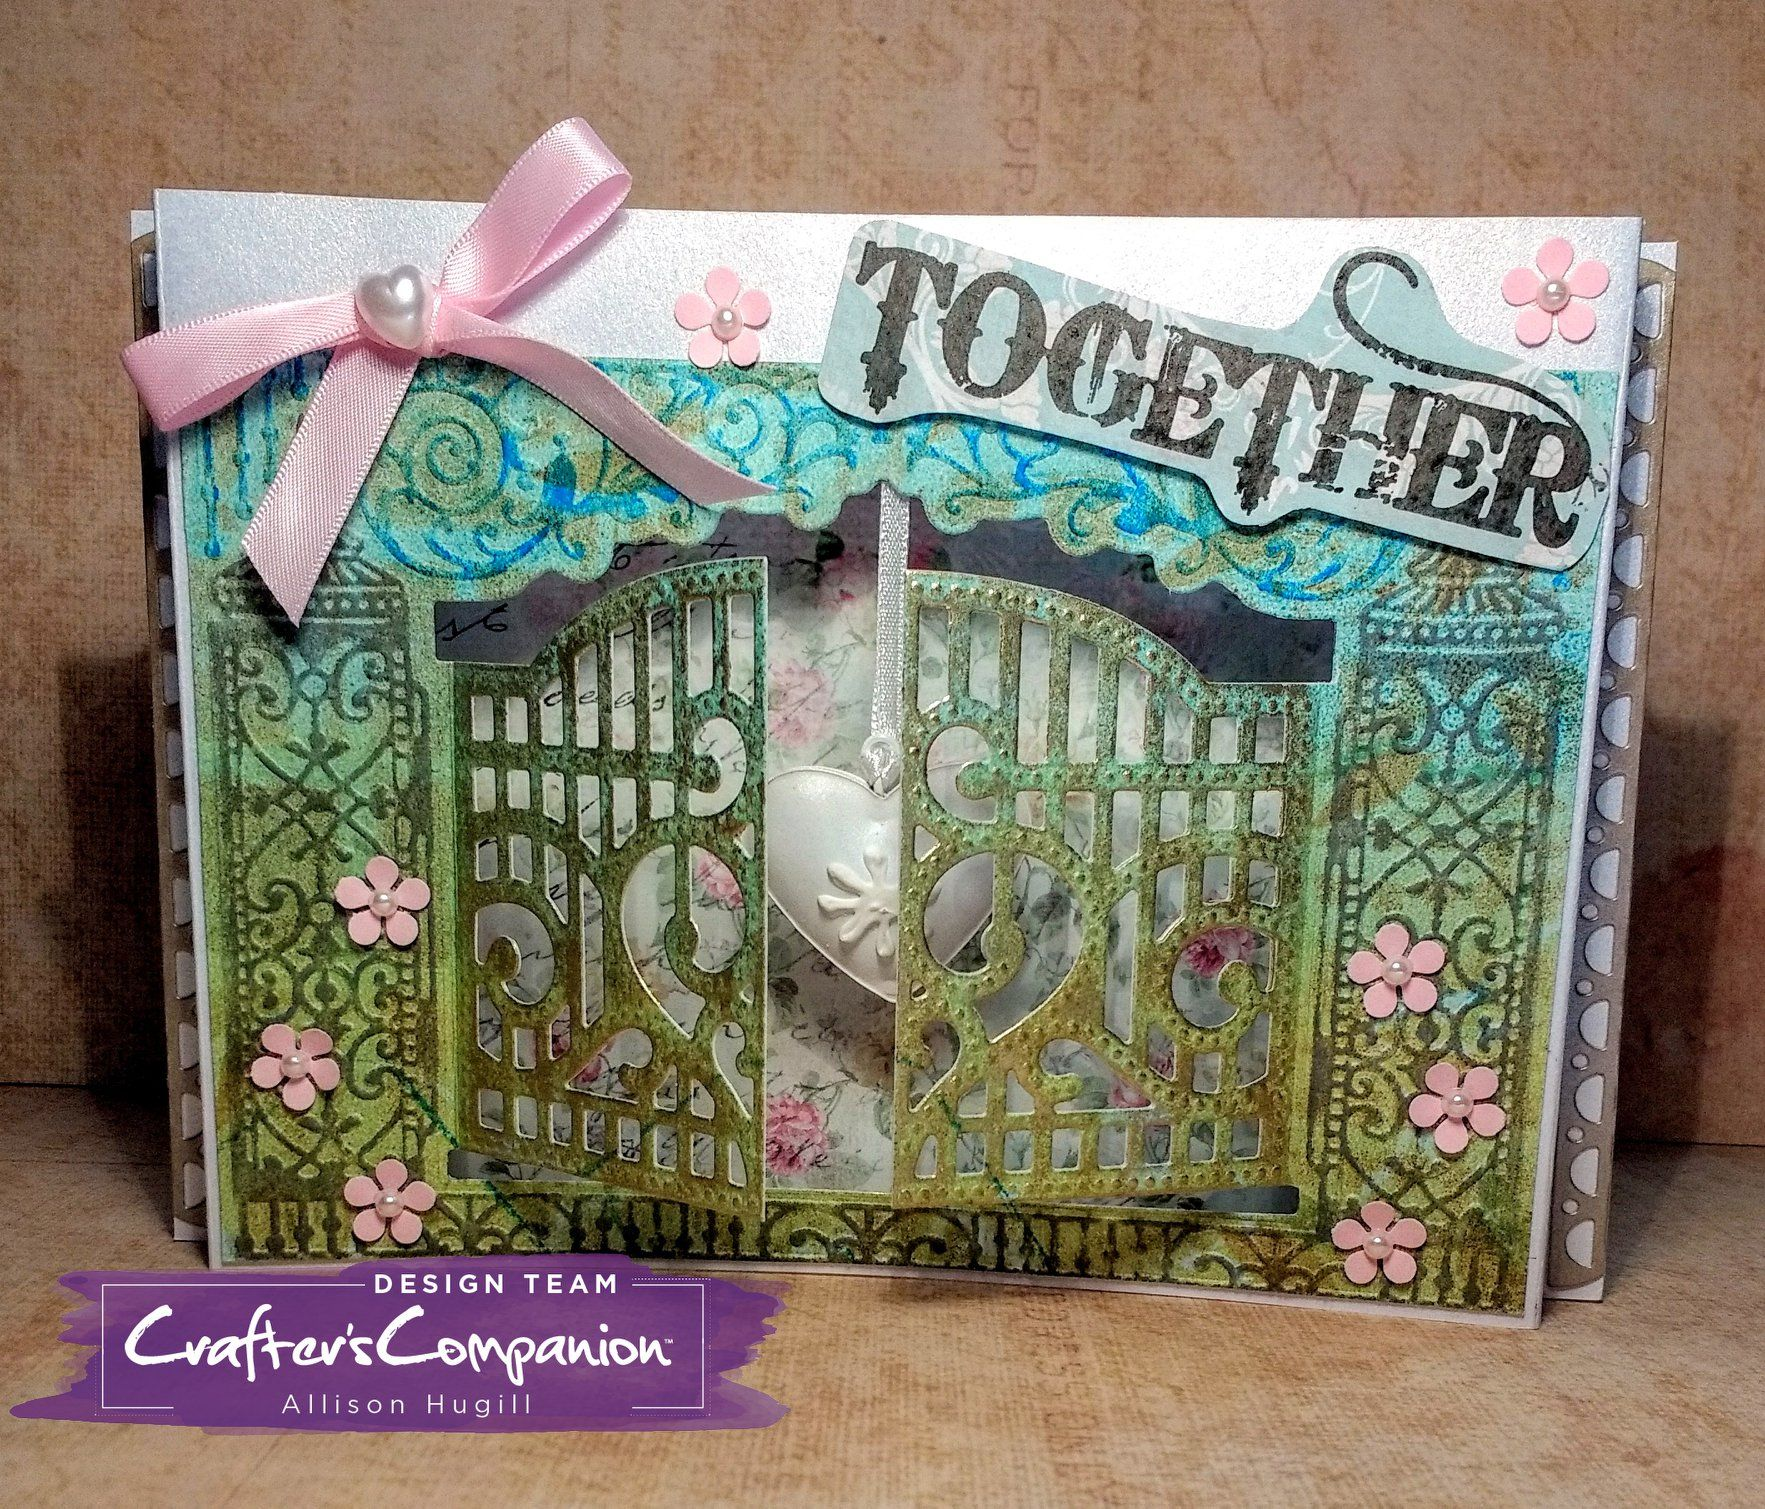 CRAFTERS COMPANION CUT /& EMBOSS FOLDERS BY GEMINI